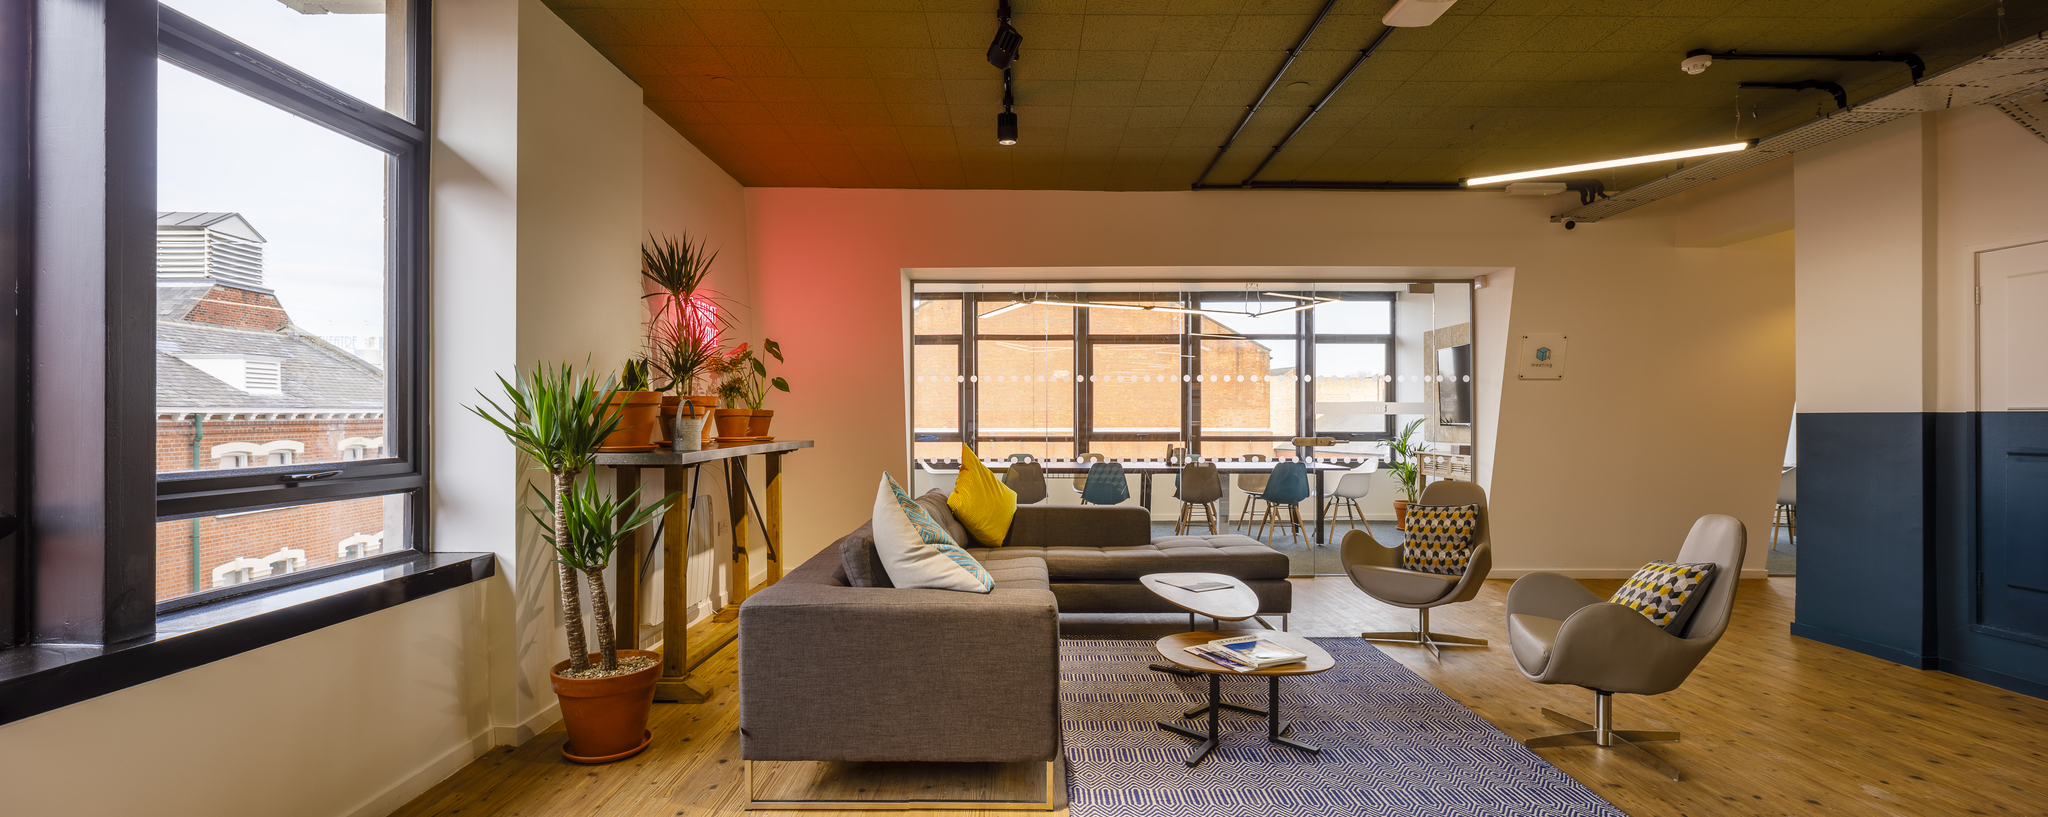 K2 - Bond Street, HU1 - Hull (private, co-working, residential apartments)